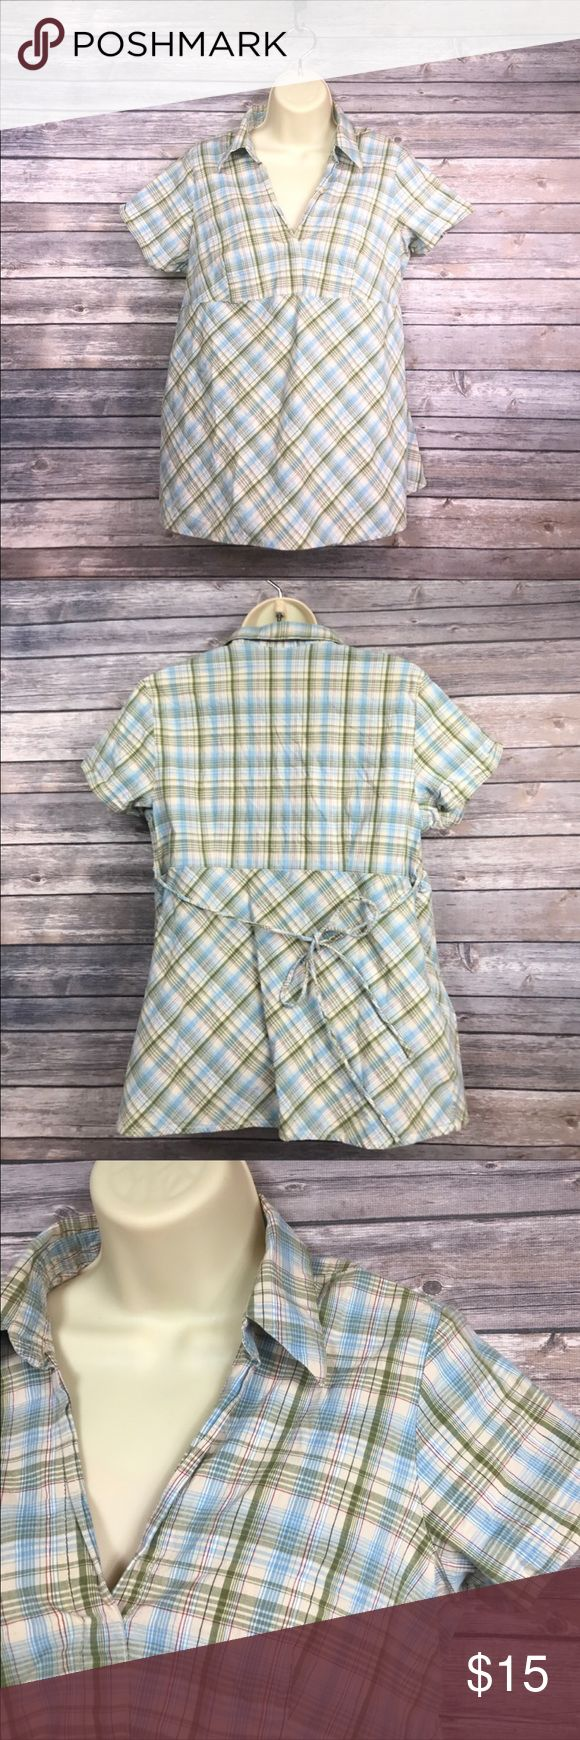 💝Motherhood Maternity short sleeve top Cute pattern for spring/summer!  Has tie back and shirt sleeves.  Size Large. Motherhood Maternity Tops